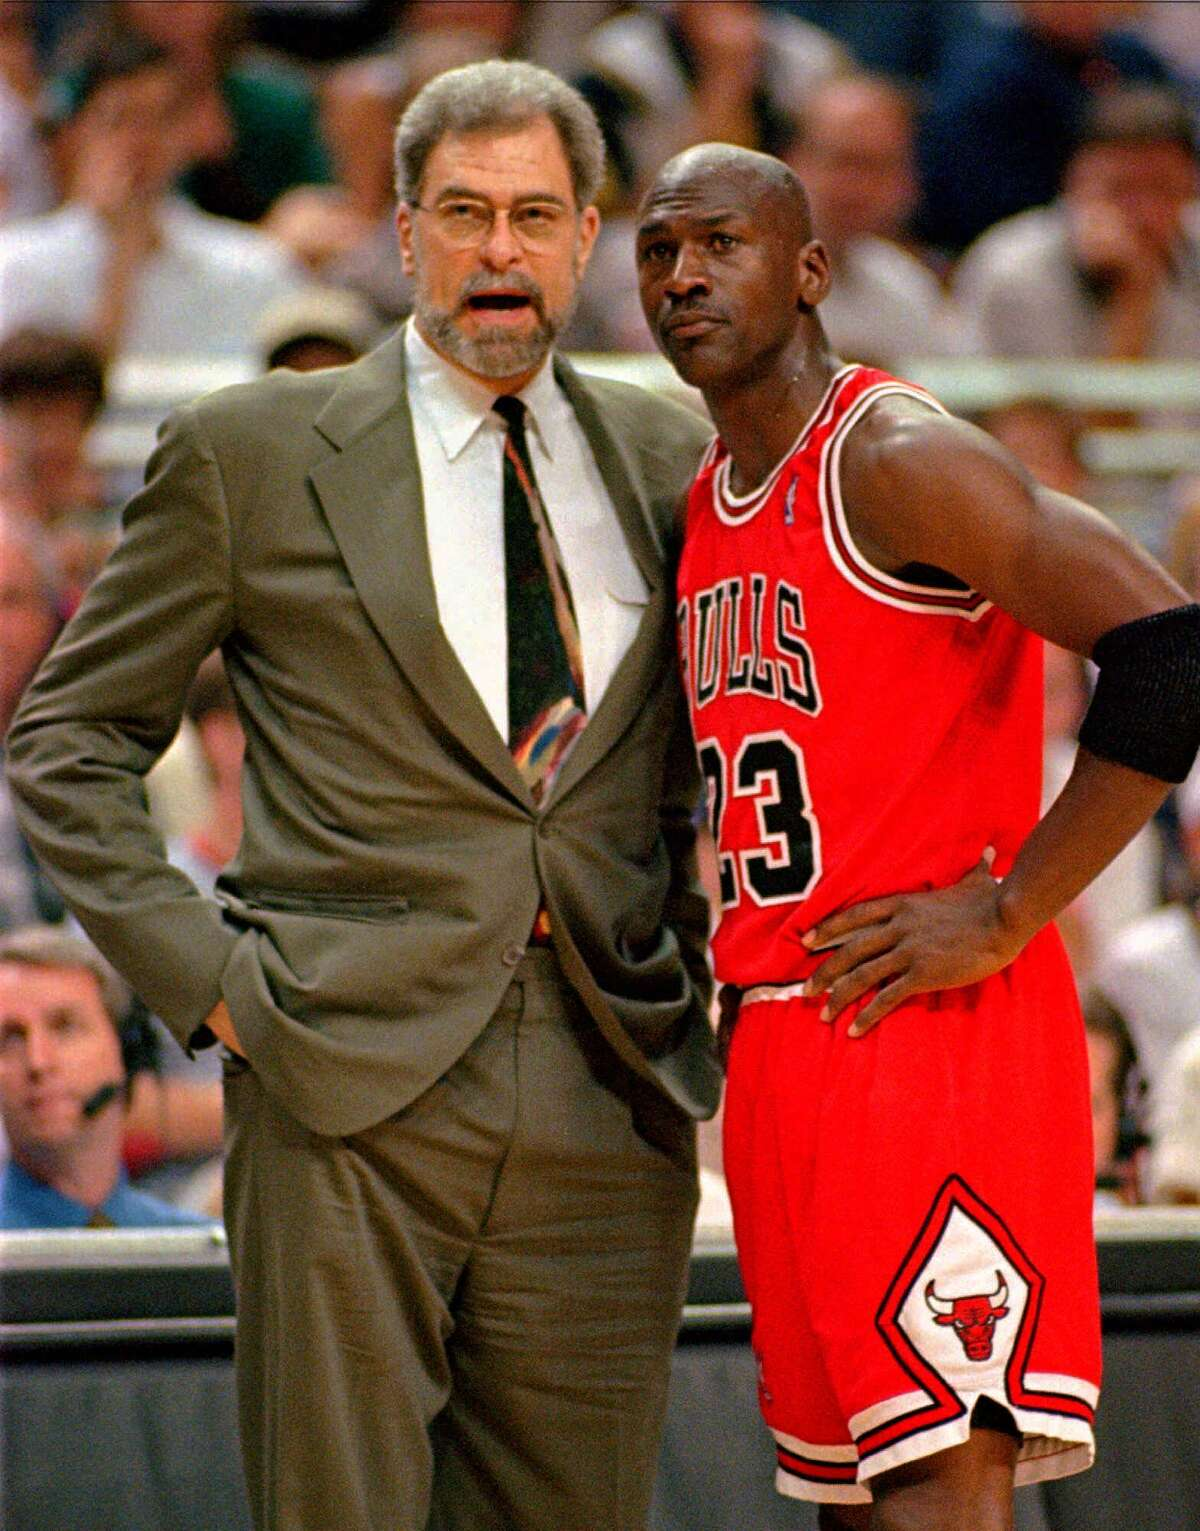 Chicago Bulls head coach Phil Jackson, left, and guard Michael Jordan talk during a timeout in their Eastern Conference Final game in 1996 in Orlando. Jackson was up in the stands at Glens Falls Civic Center one day in 1984 when he witnessed a younger Jordan display his prowess on the Chicago Bulls team in a winning game against the New York Knicks.